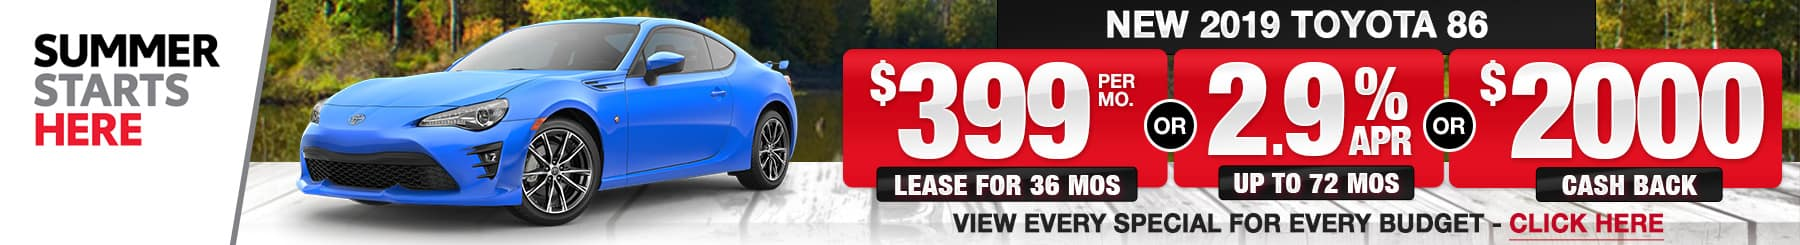 Toyota 86 Lease and Finance Specials